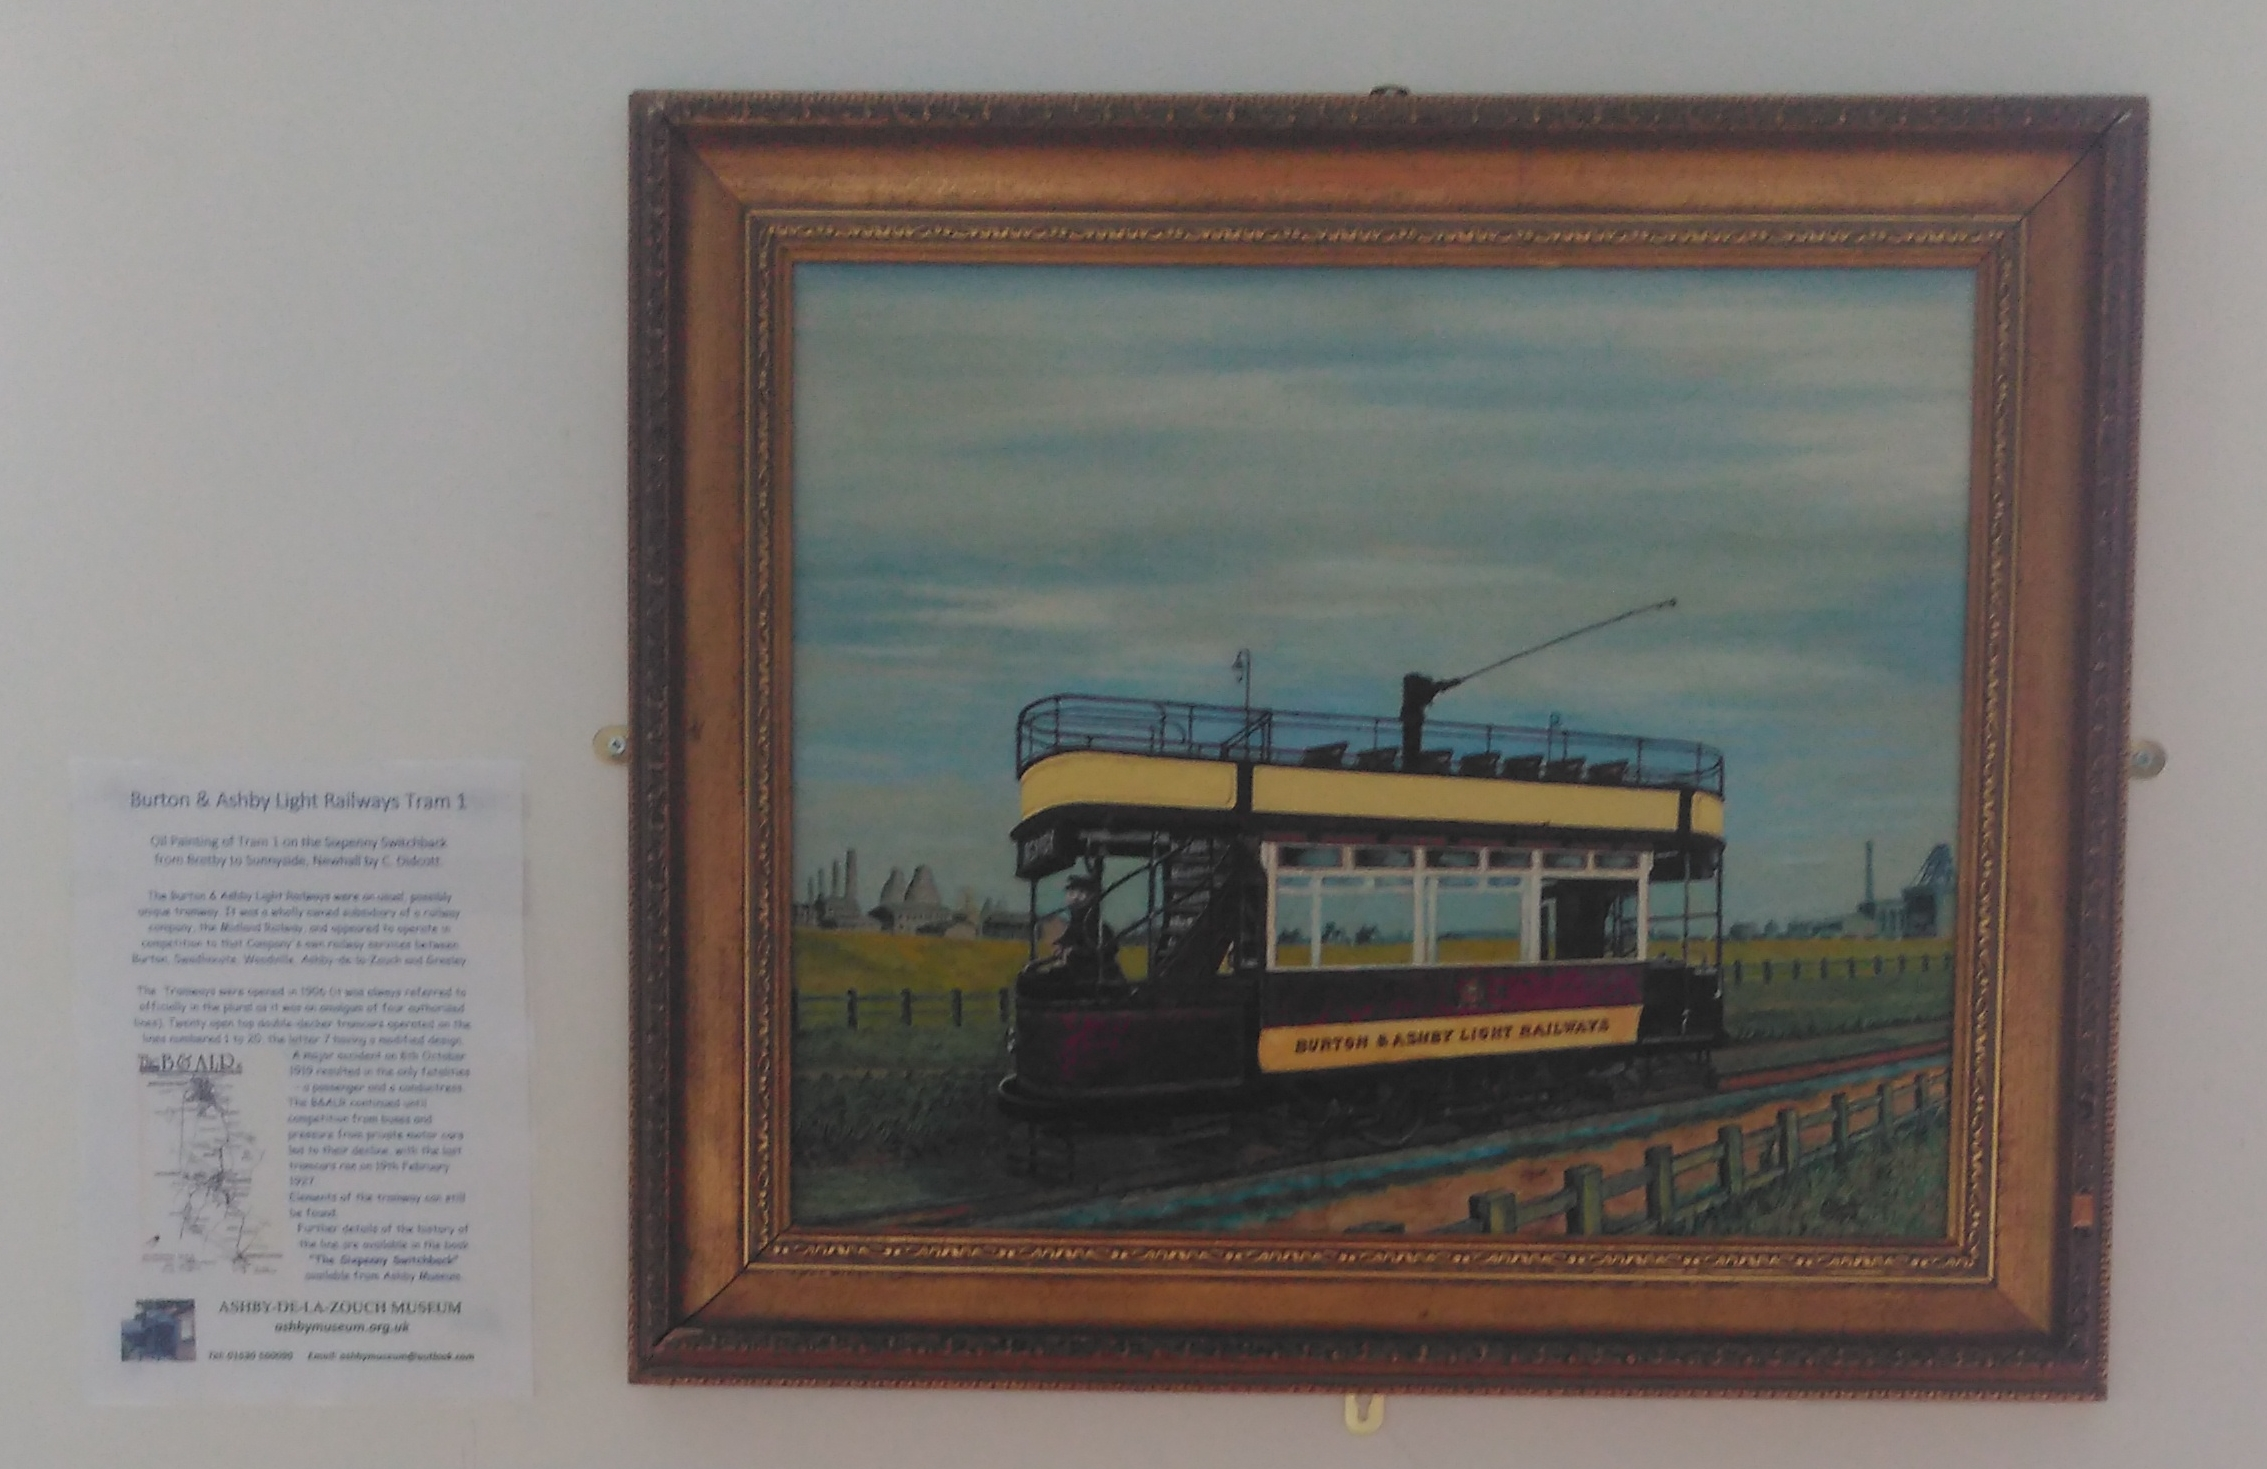 A tram from the Ashby and Burton Light Railway